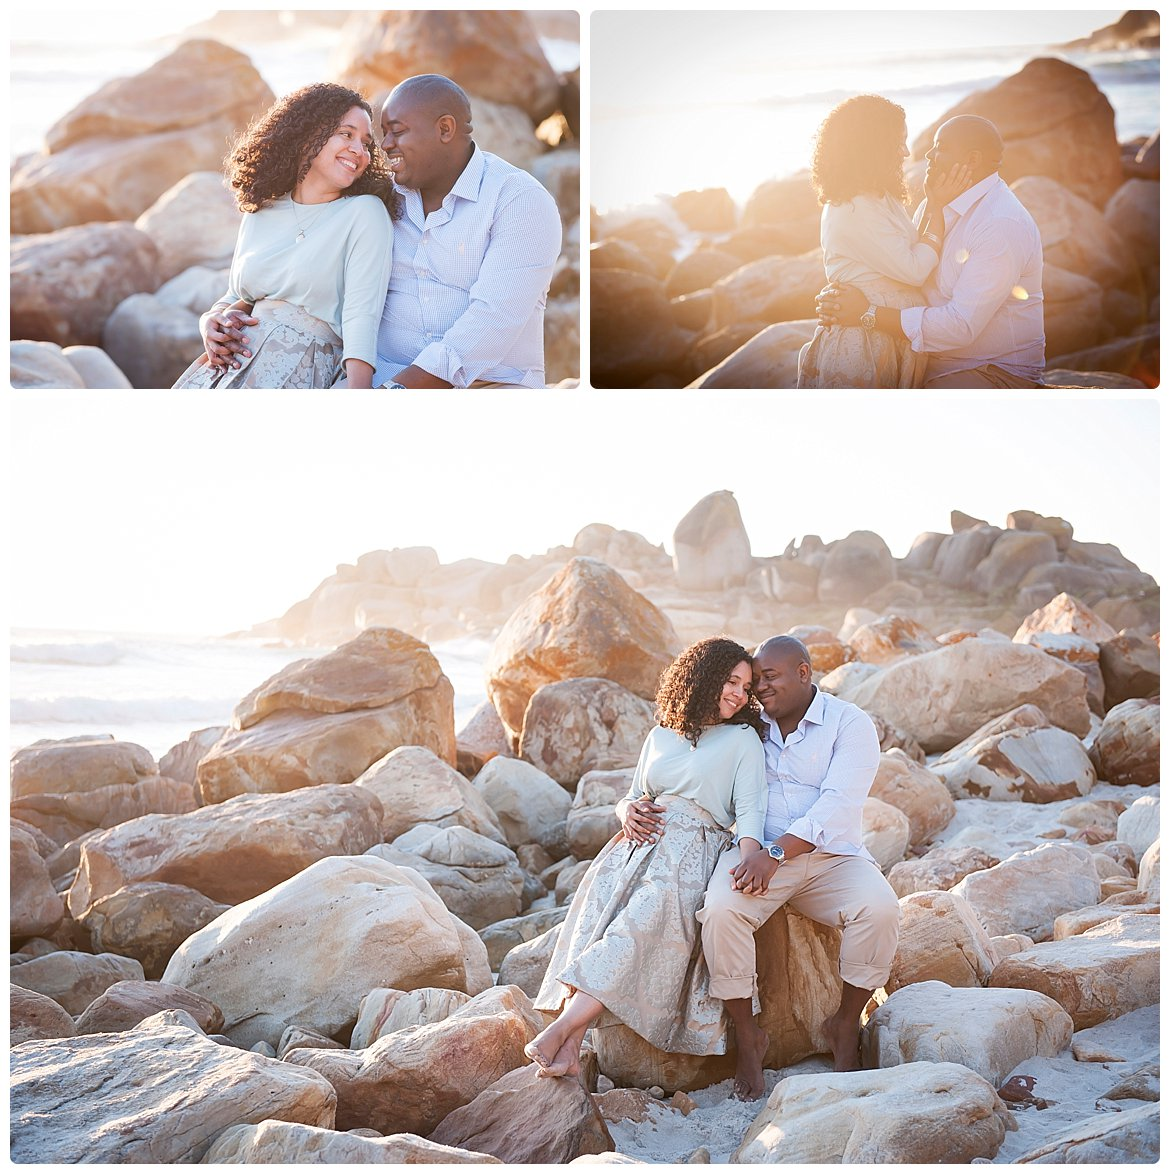 couple-portraits-shoot-cape-town-photographer-joanne-markland-WT-0013